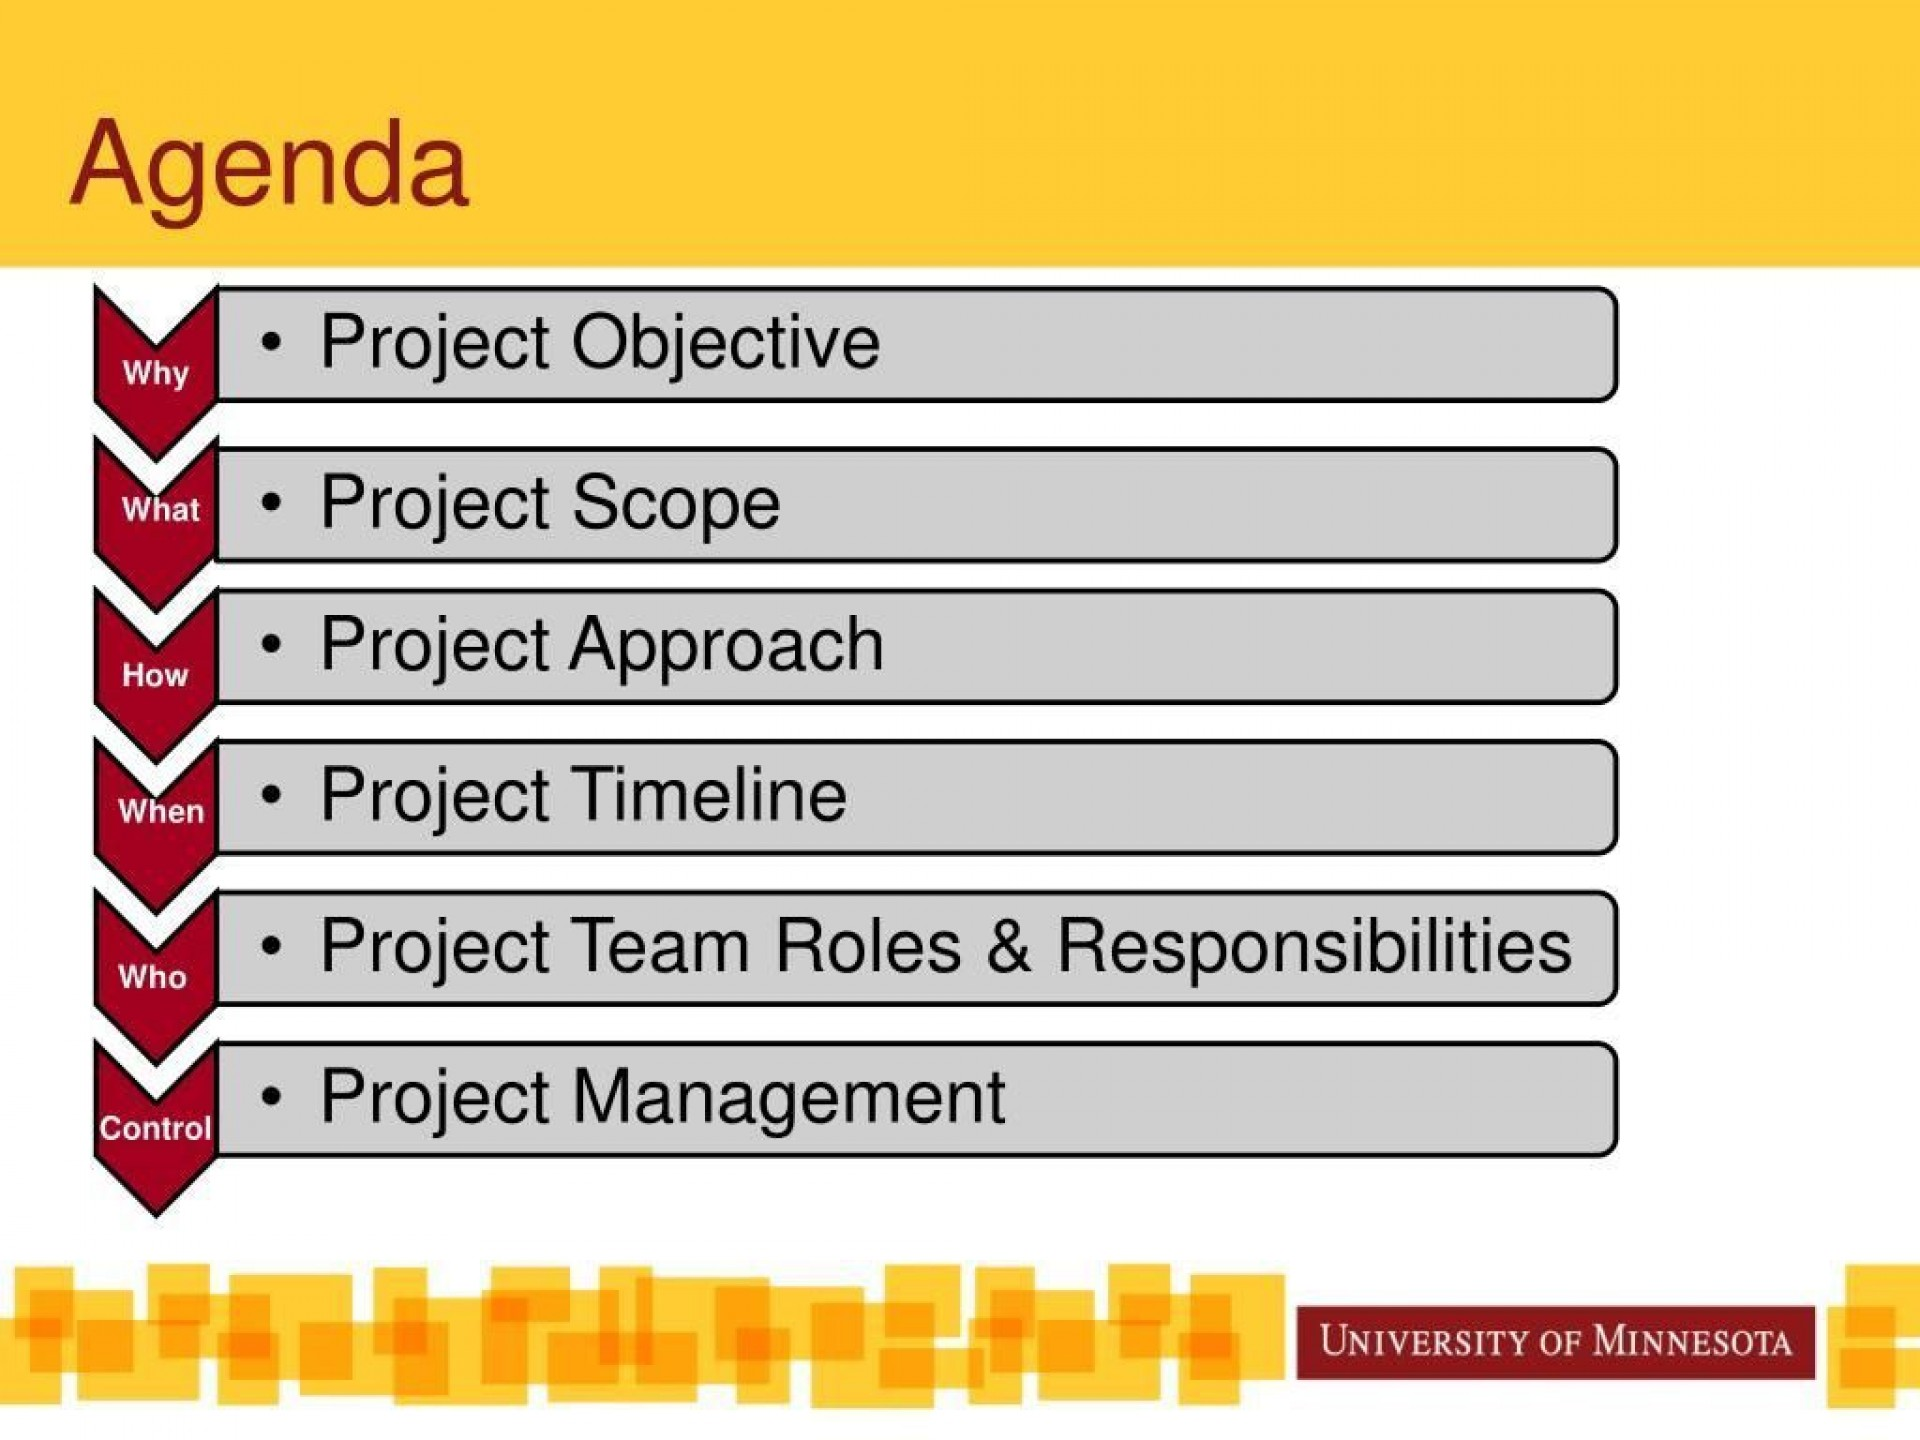 000 Unbelievable Project Management Kickoff Meeting Template Ppt High Definition 1920